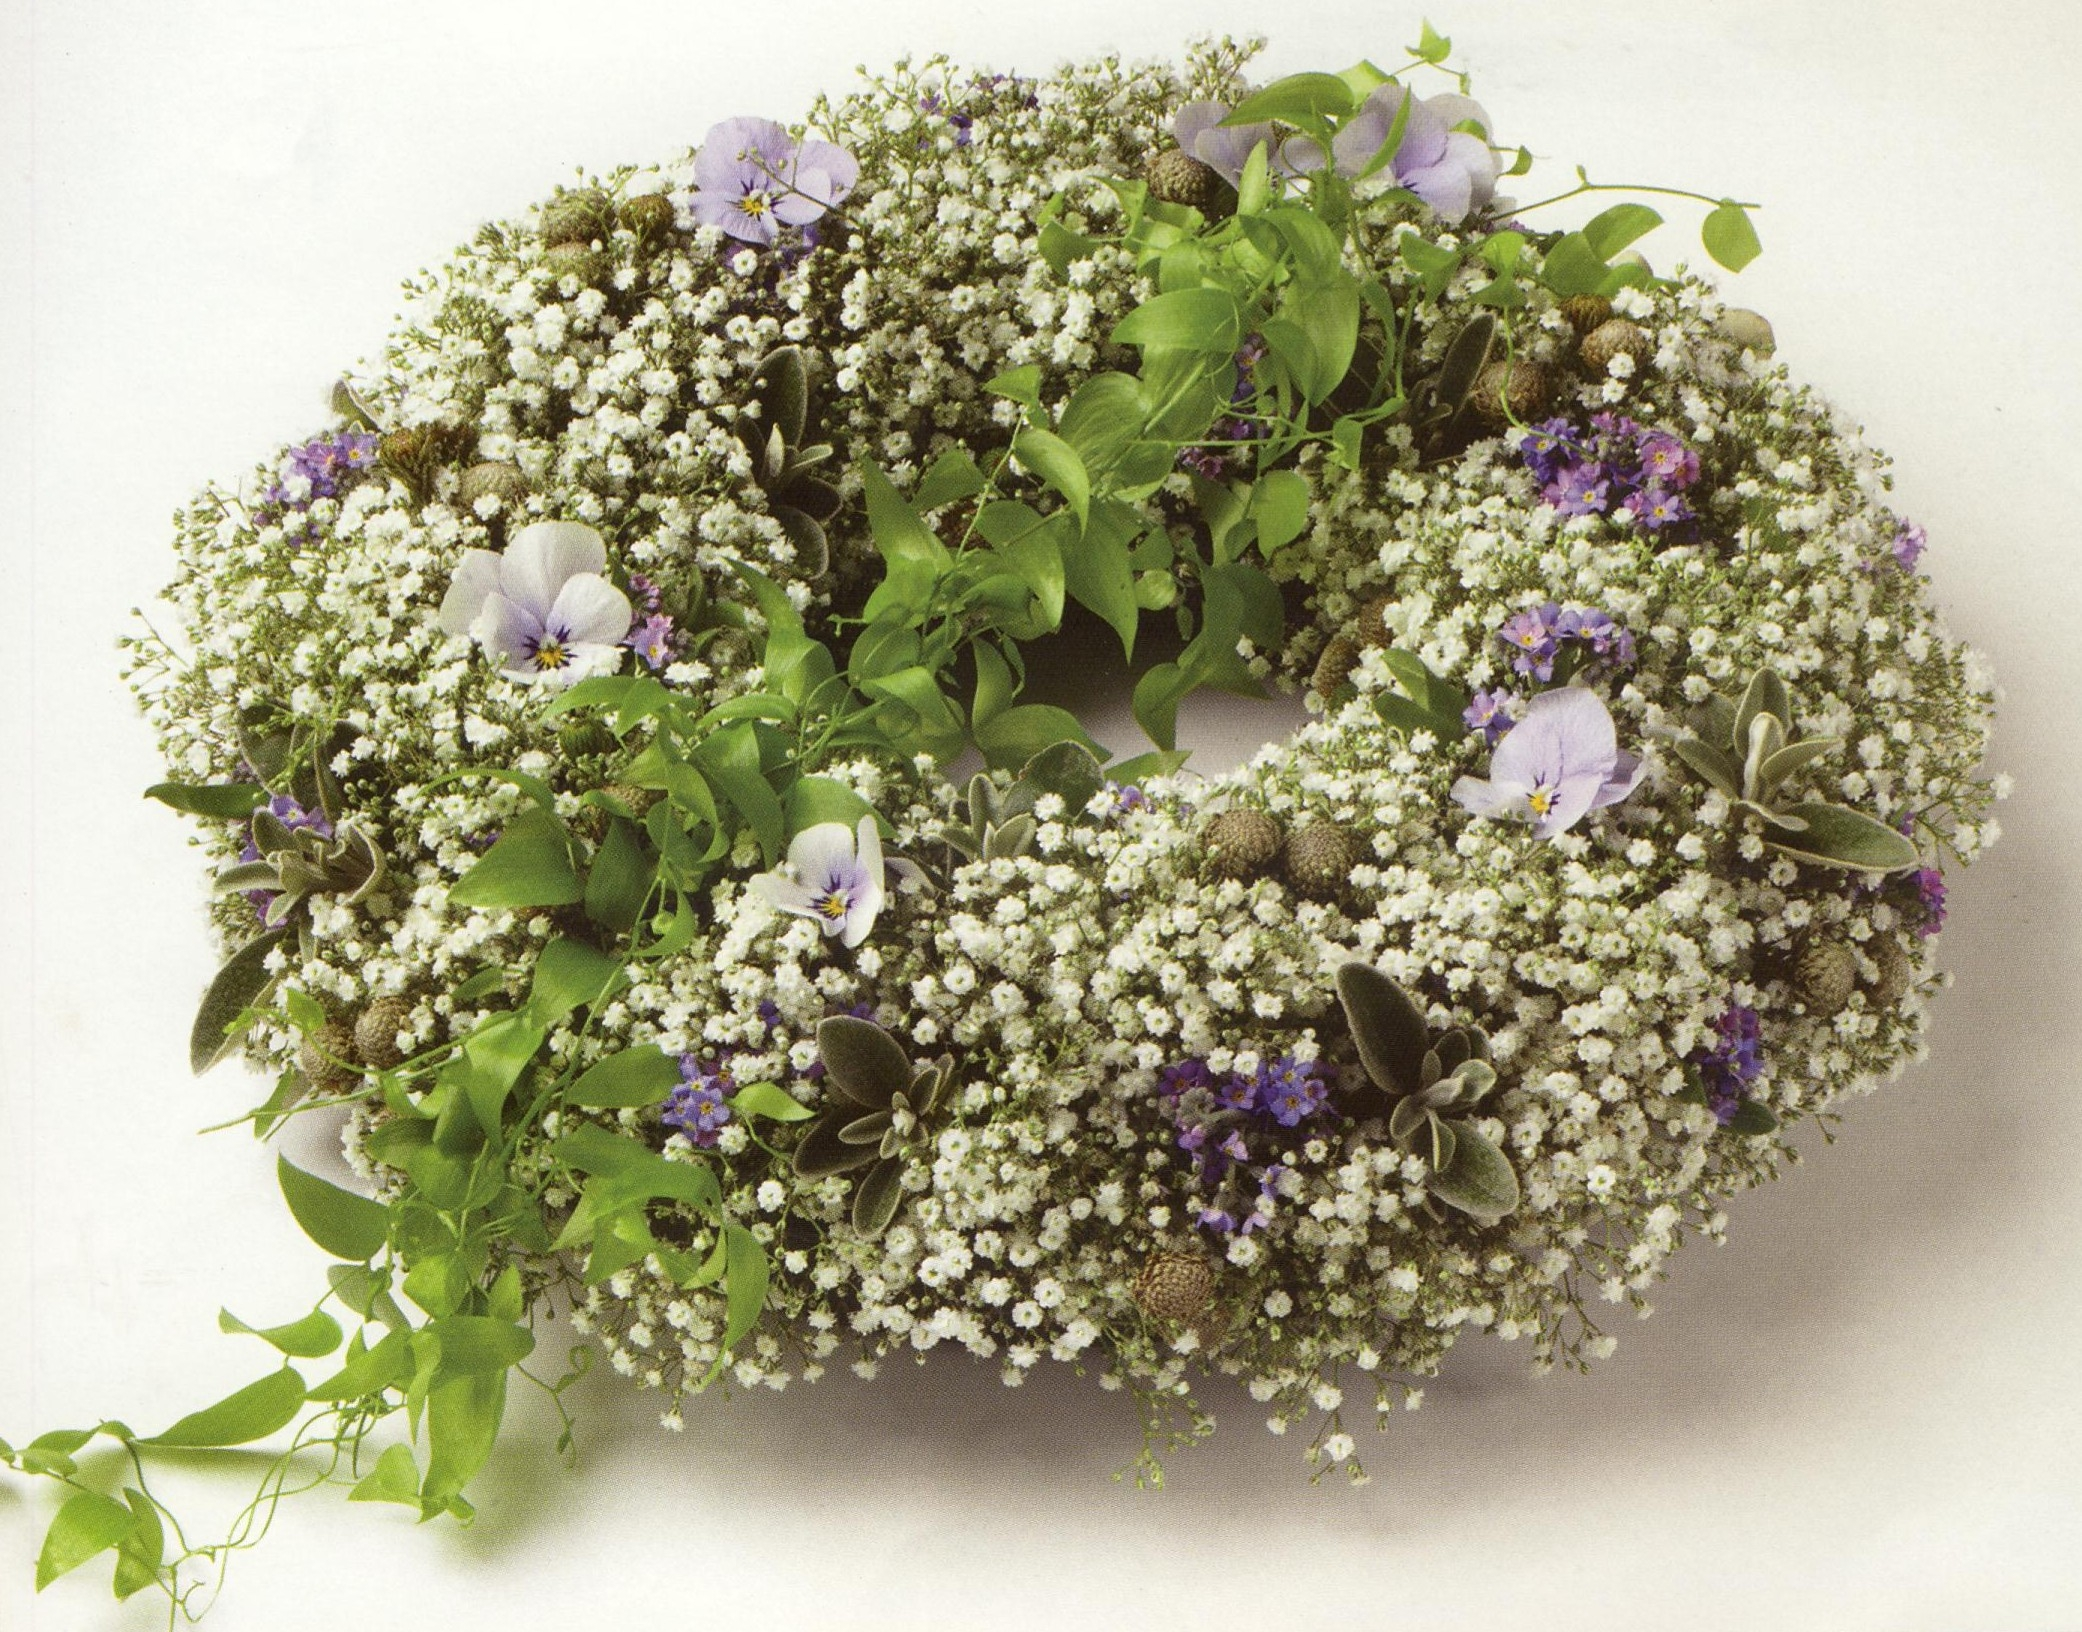 gypsophila and violets funeral wreath 14""